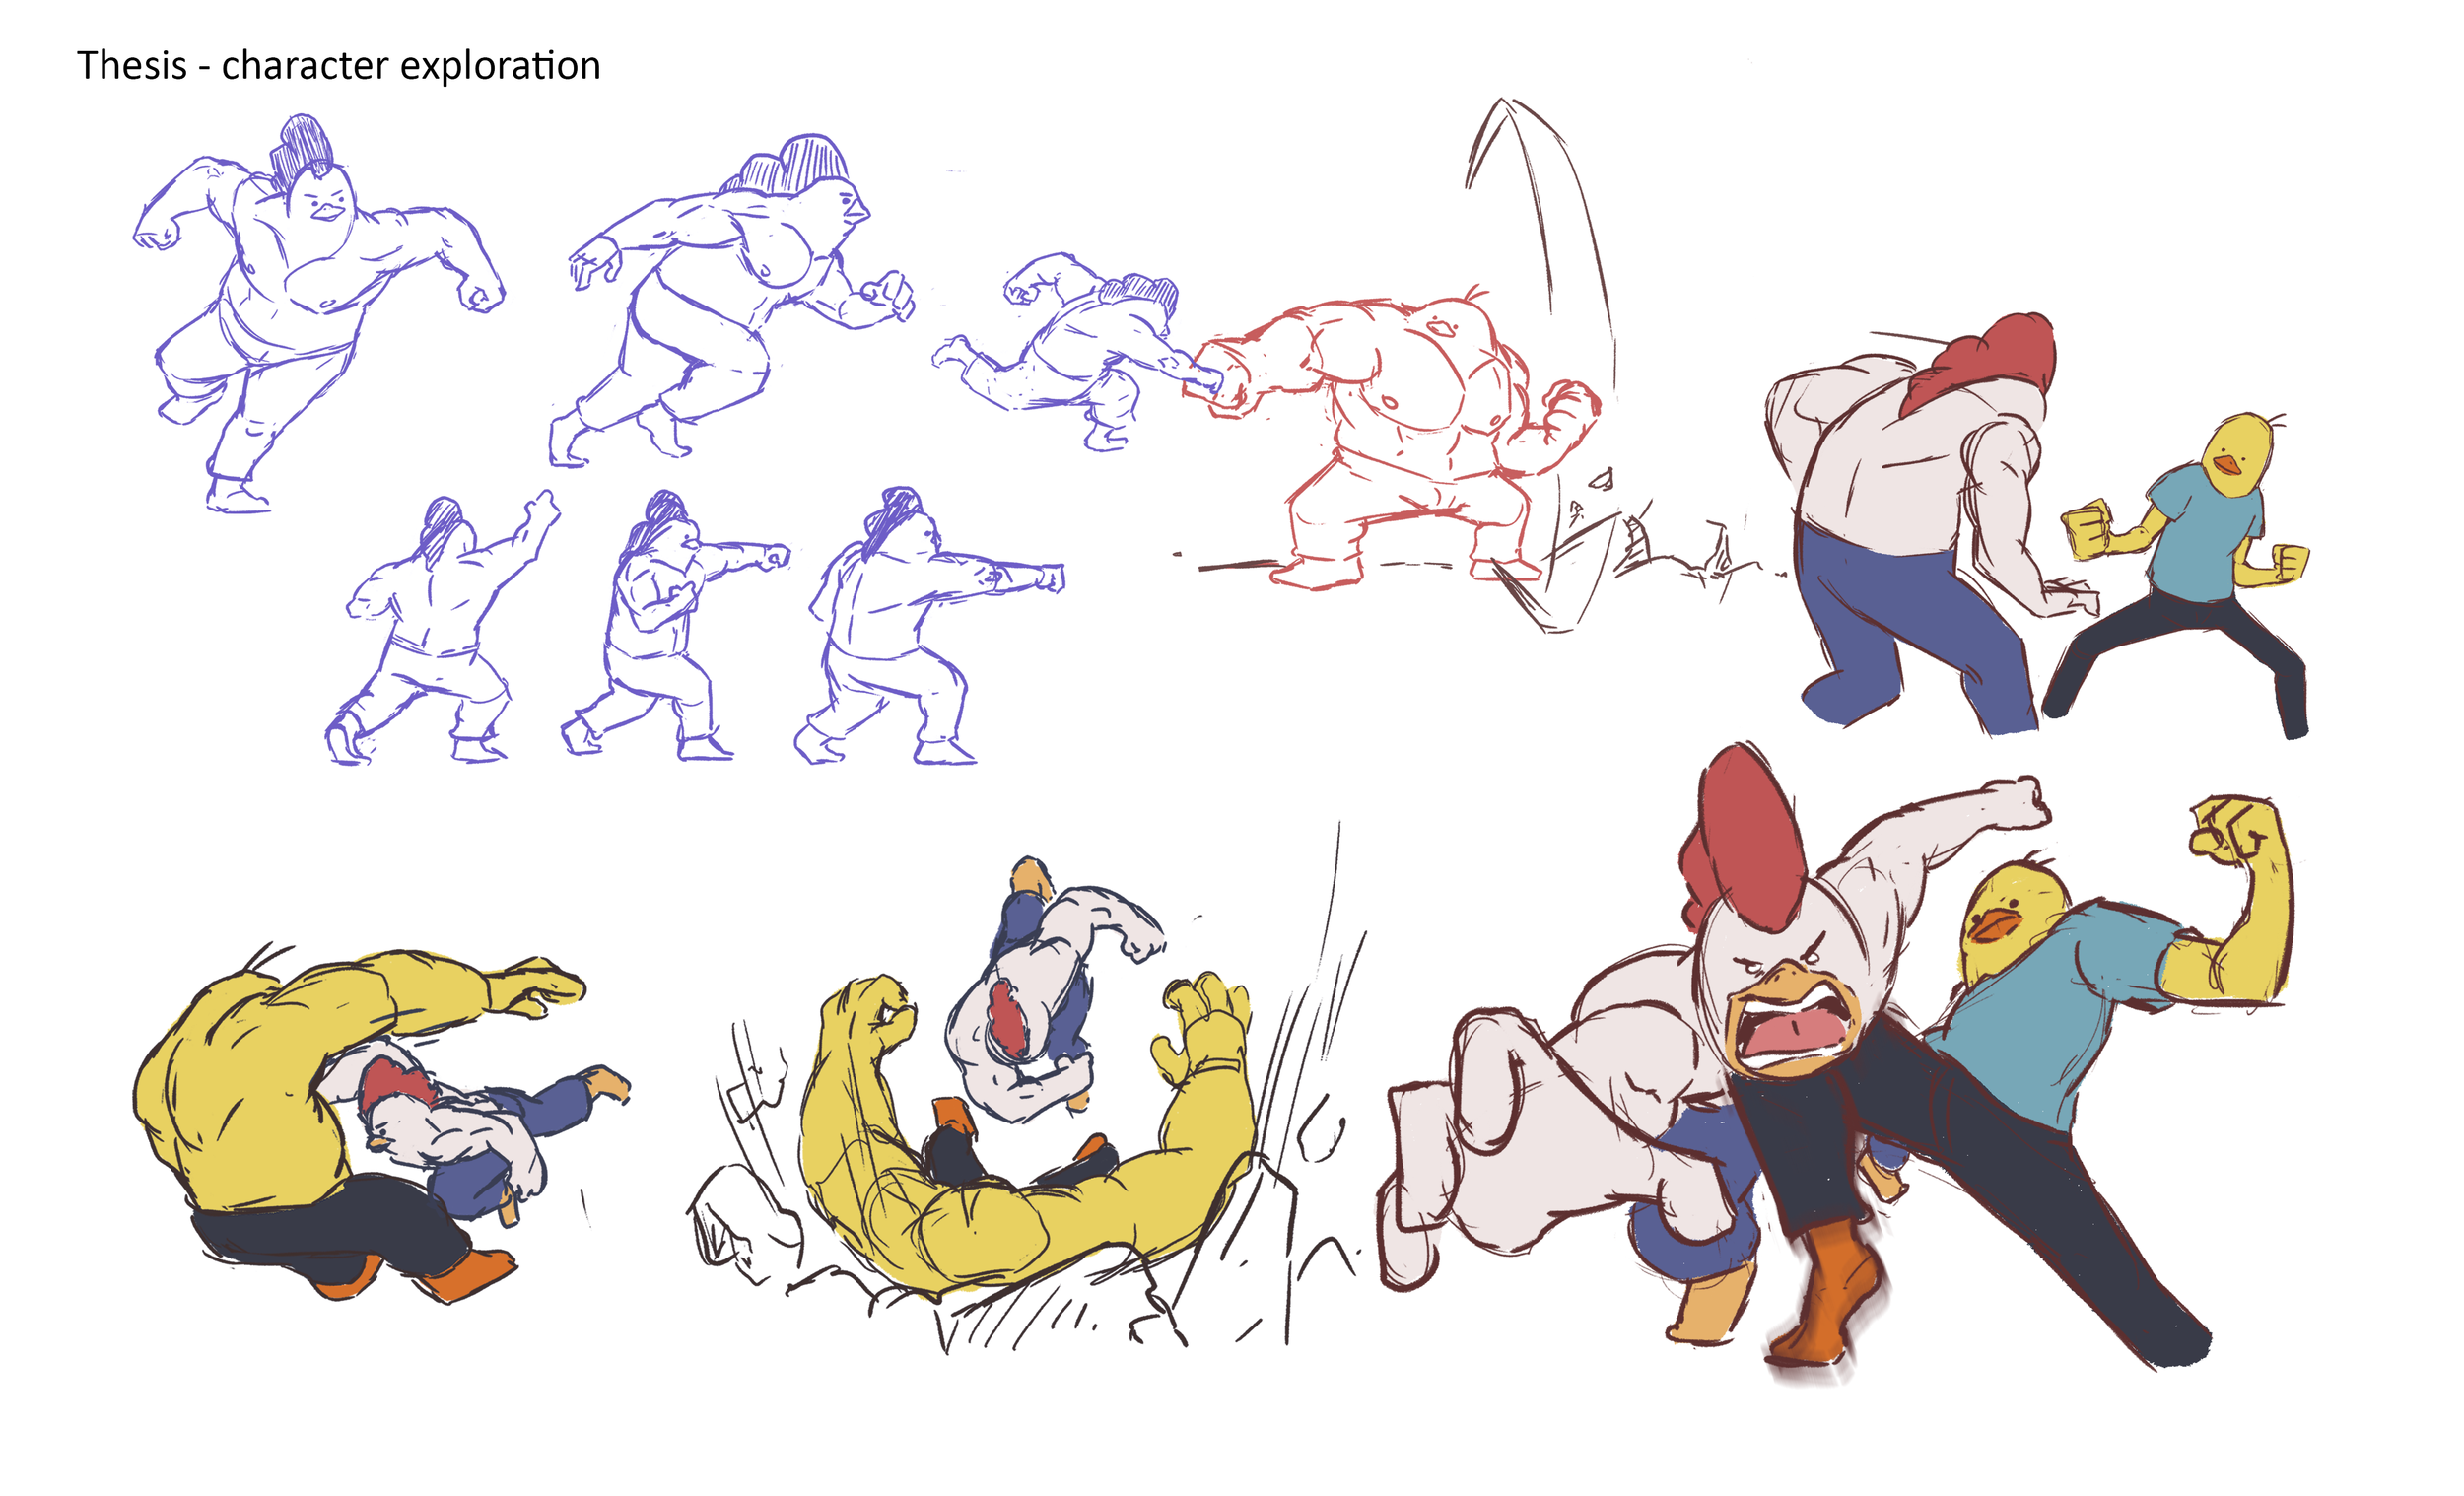 thesis poses.png